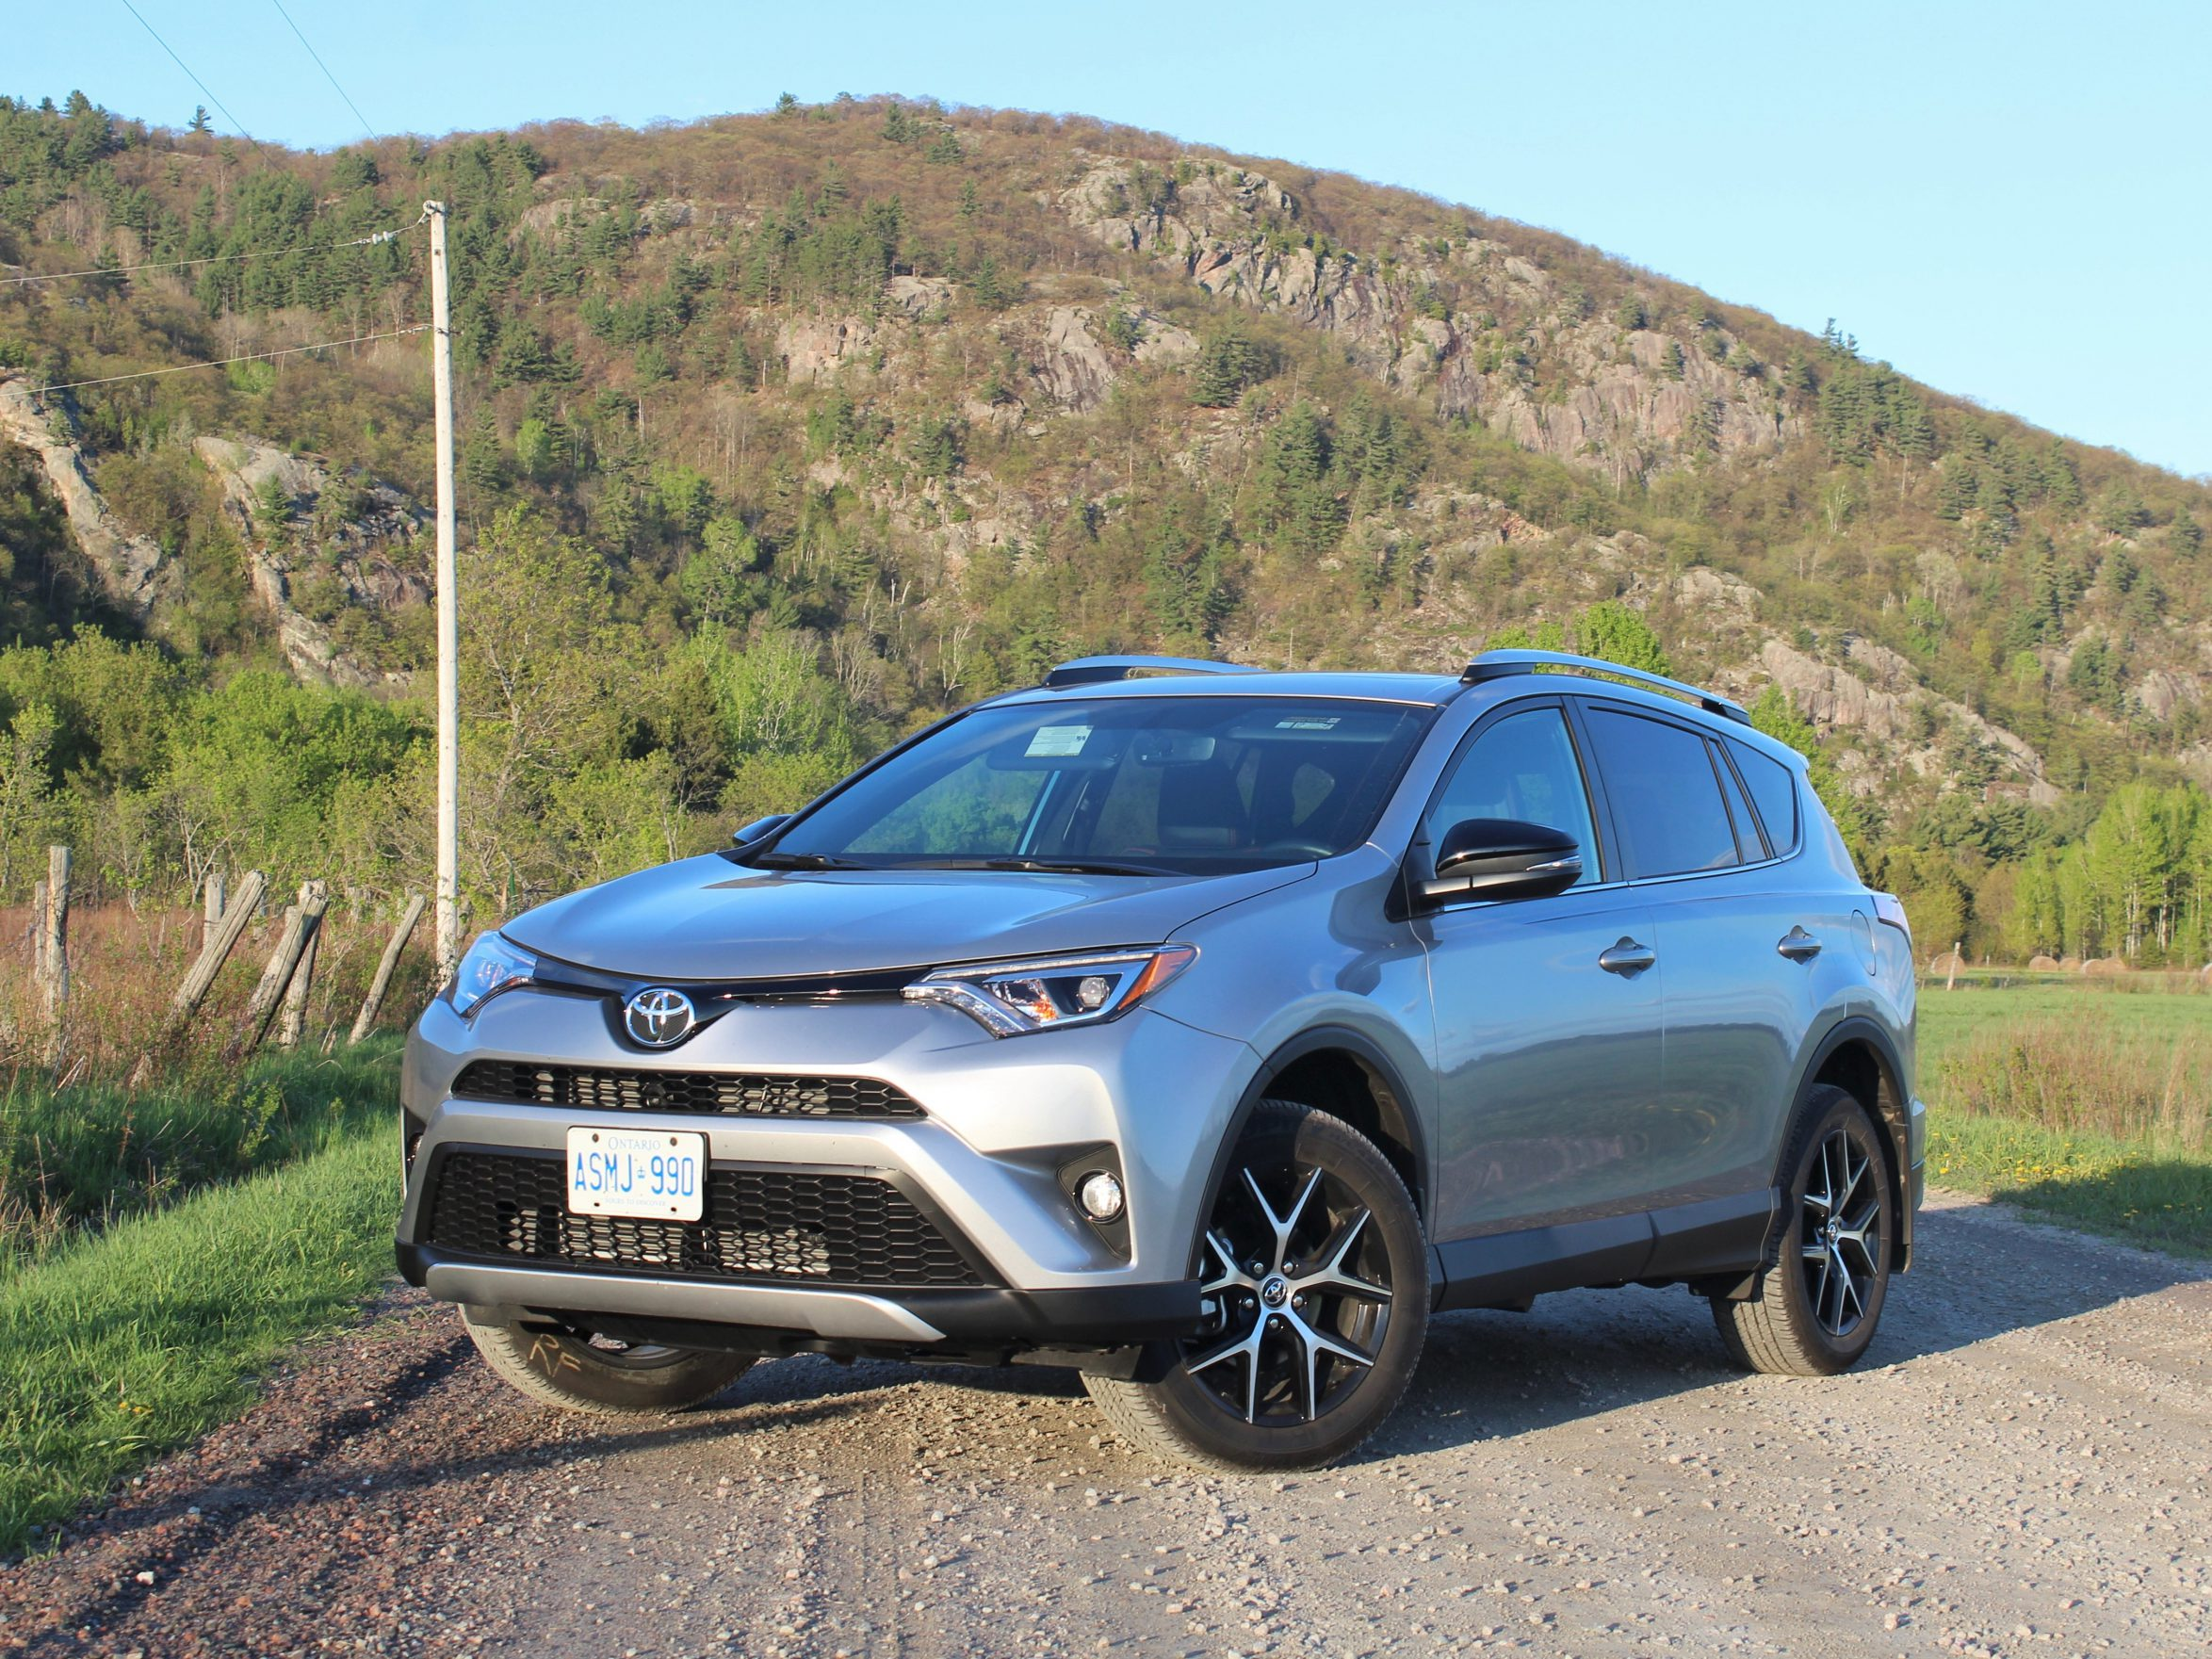 2016 toyota rav4 awd review competent guy gets the reward the truth about cars